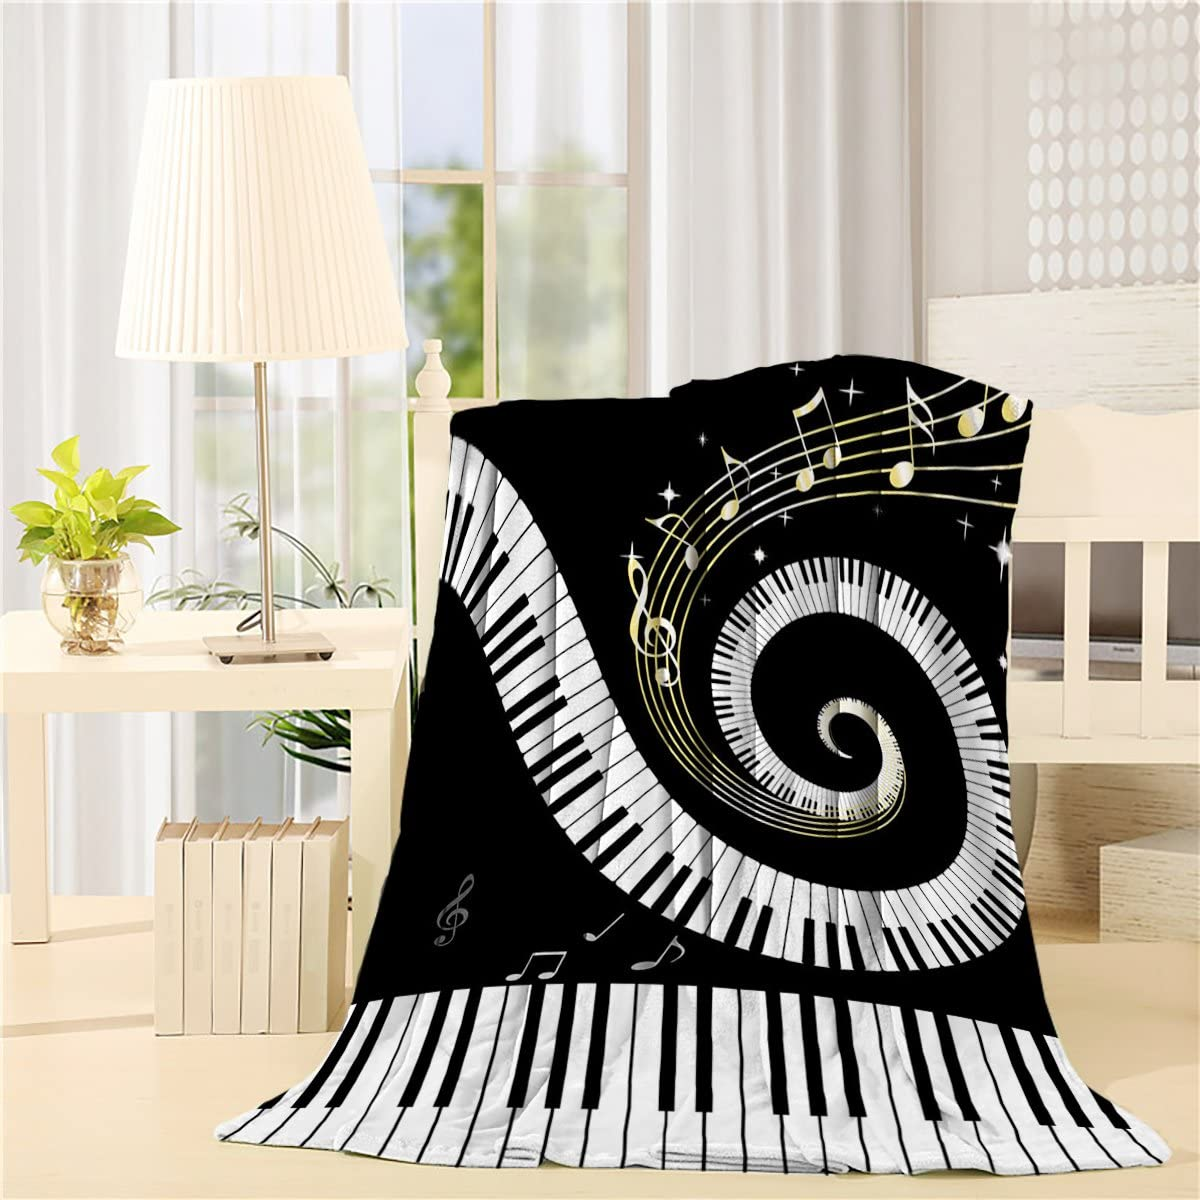 Flannel Fleece Bed Blanket 40 x 50 inch Music Decor Throw Blanket Lightweight Cozy Plush Blanket for Bedroom Living Rooms Sofa Couch - Abstract Musical Notes With Piano